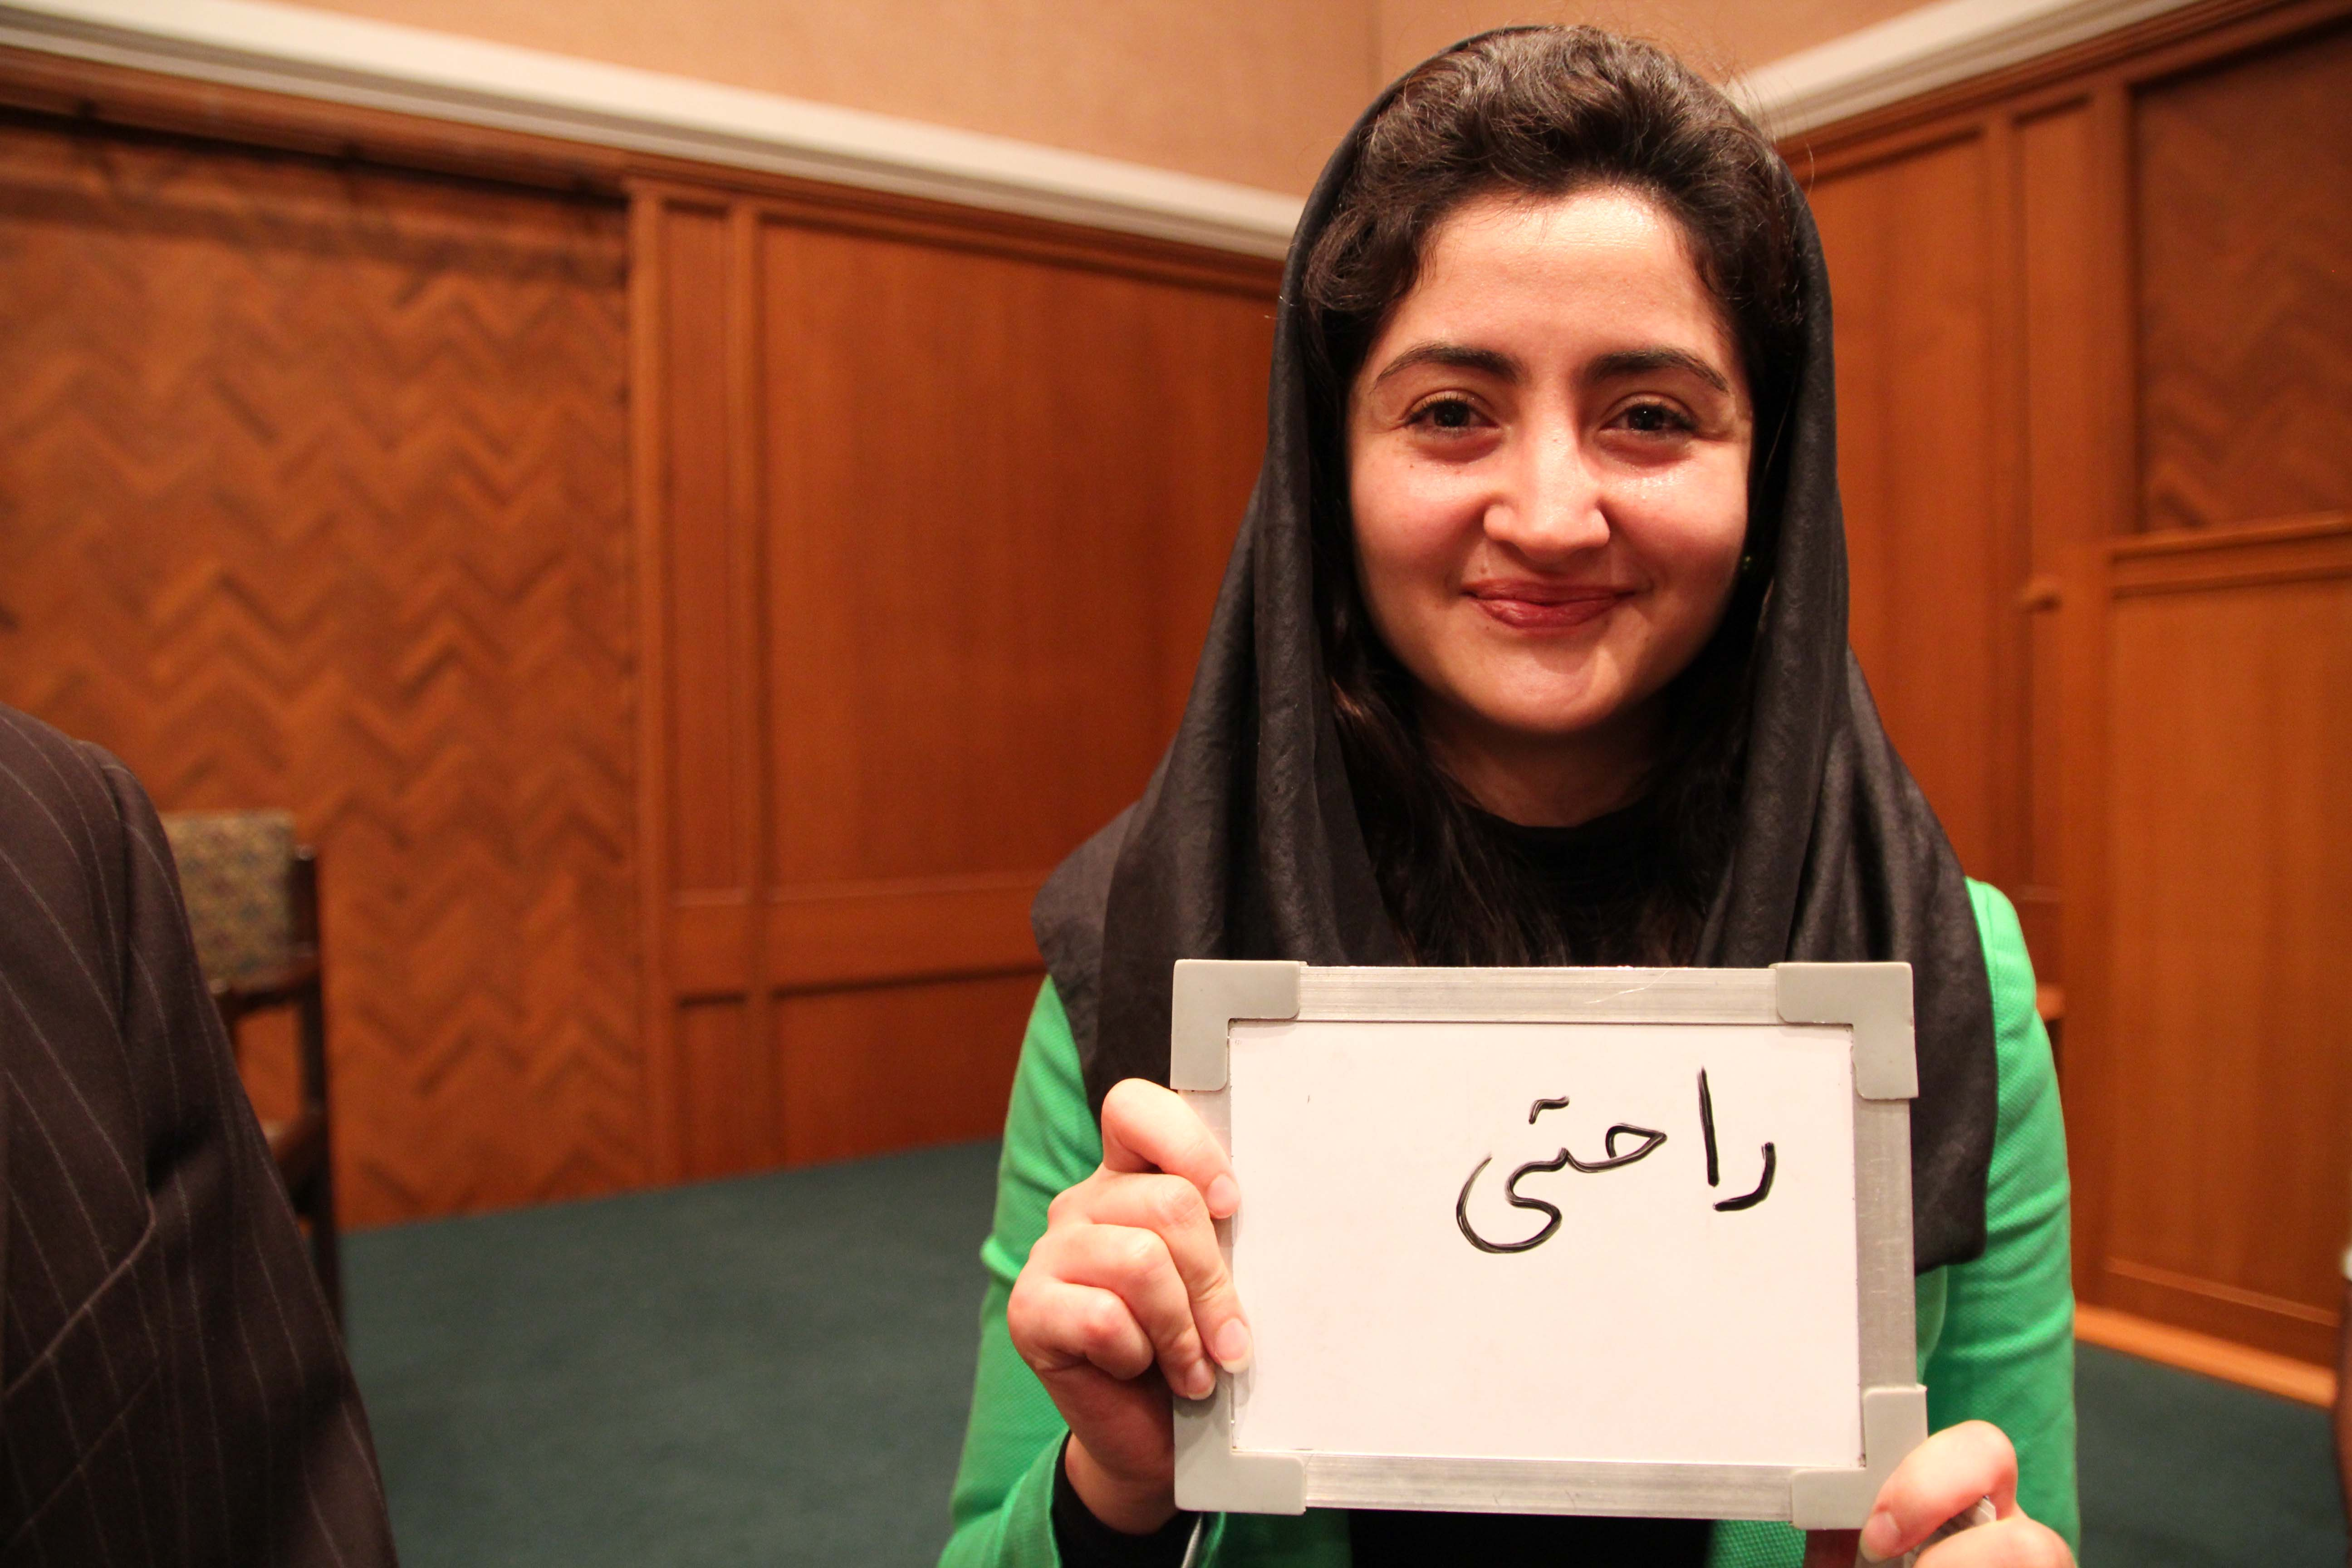 Farkhunda Zahra Naderi, a 31-year-old member of the Afghanistan National Assembly, is determined to improve the lives of women in her country in the face of immense challenges.  When Farkhunda thinks of tea, an essential part of Afghan culture, the word 'comfort' comes to her mind.